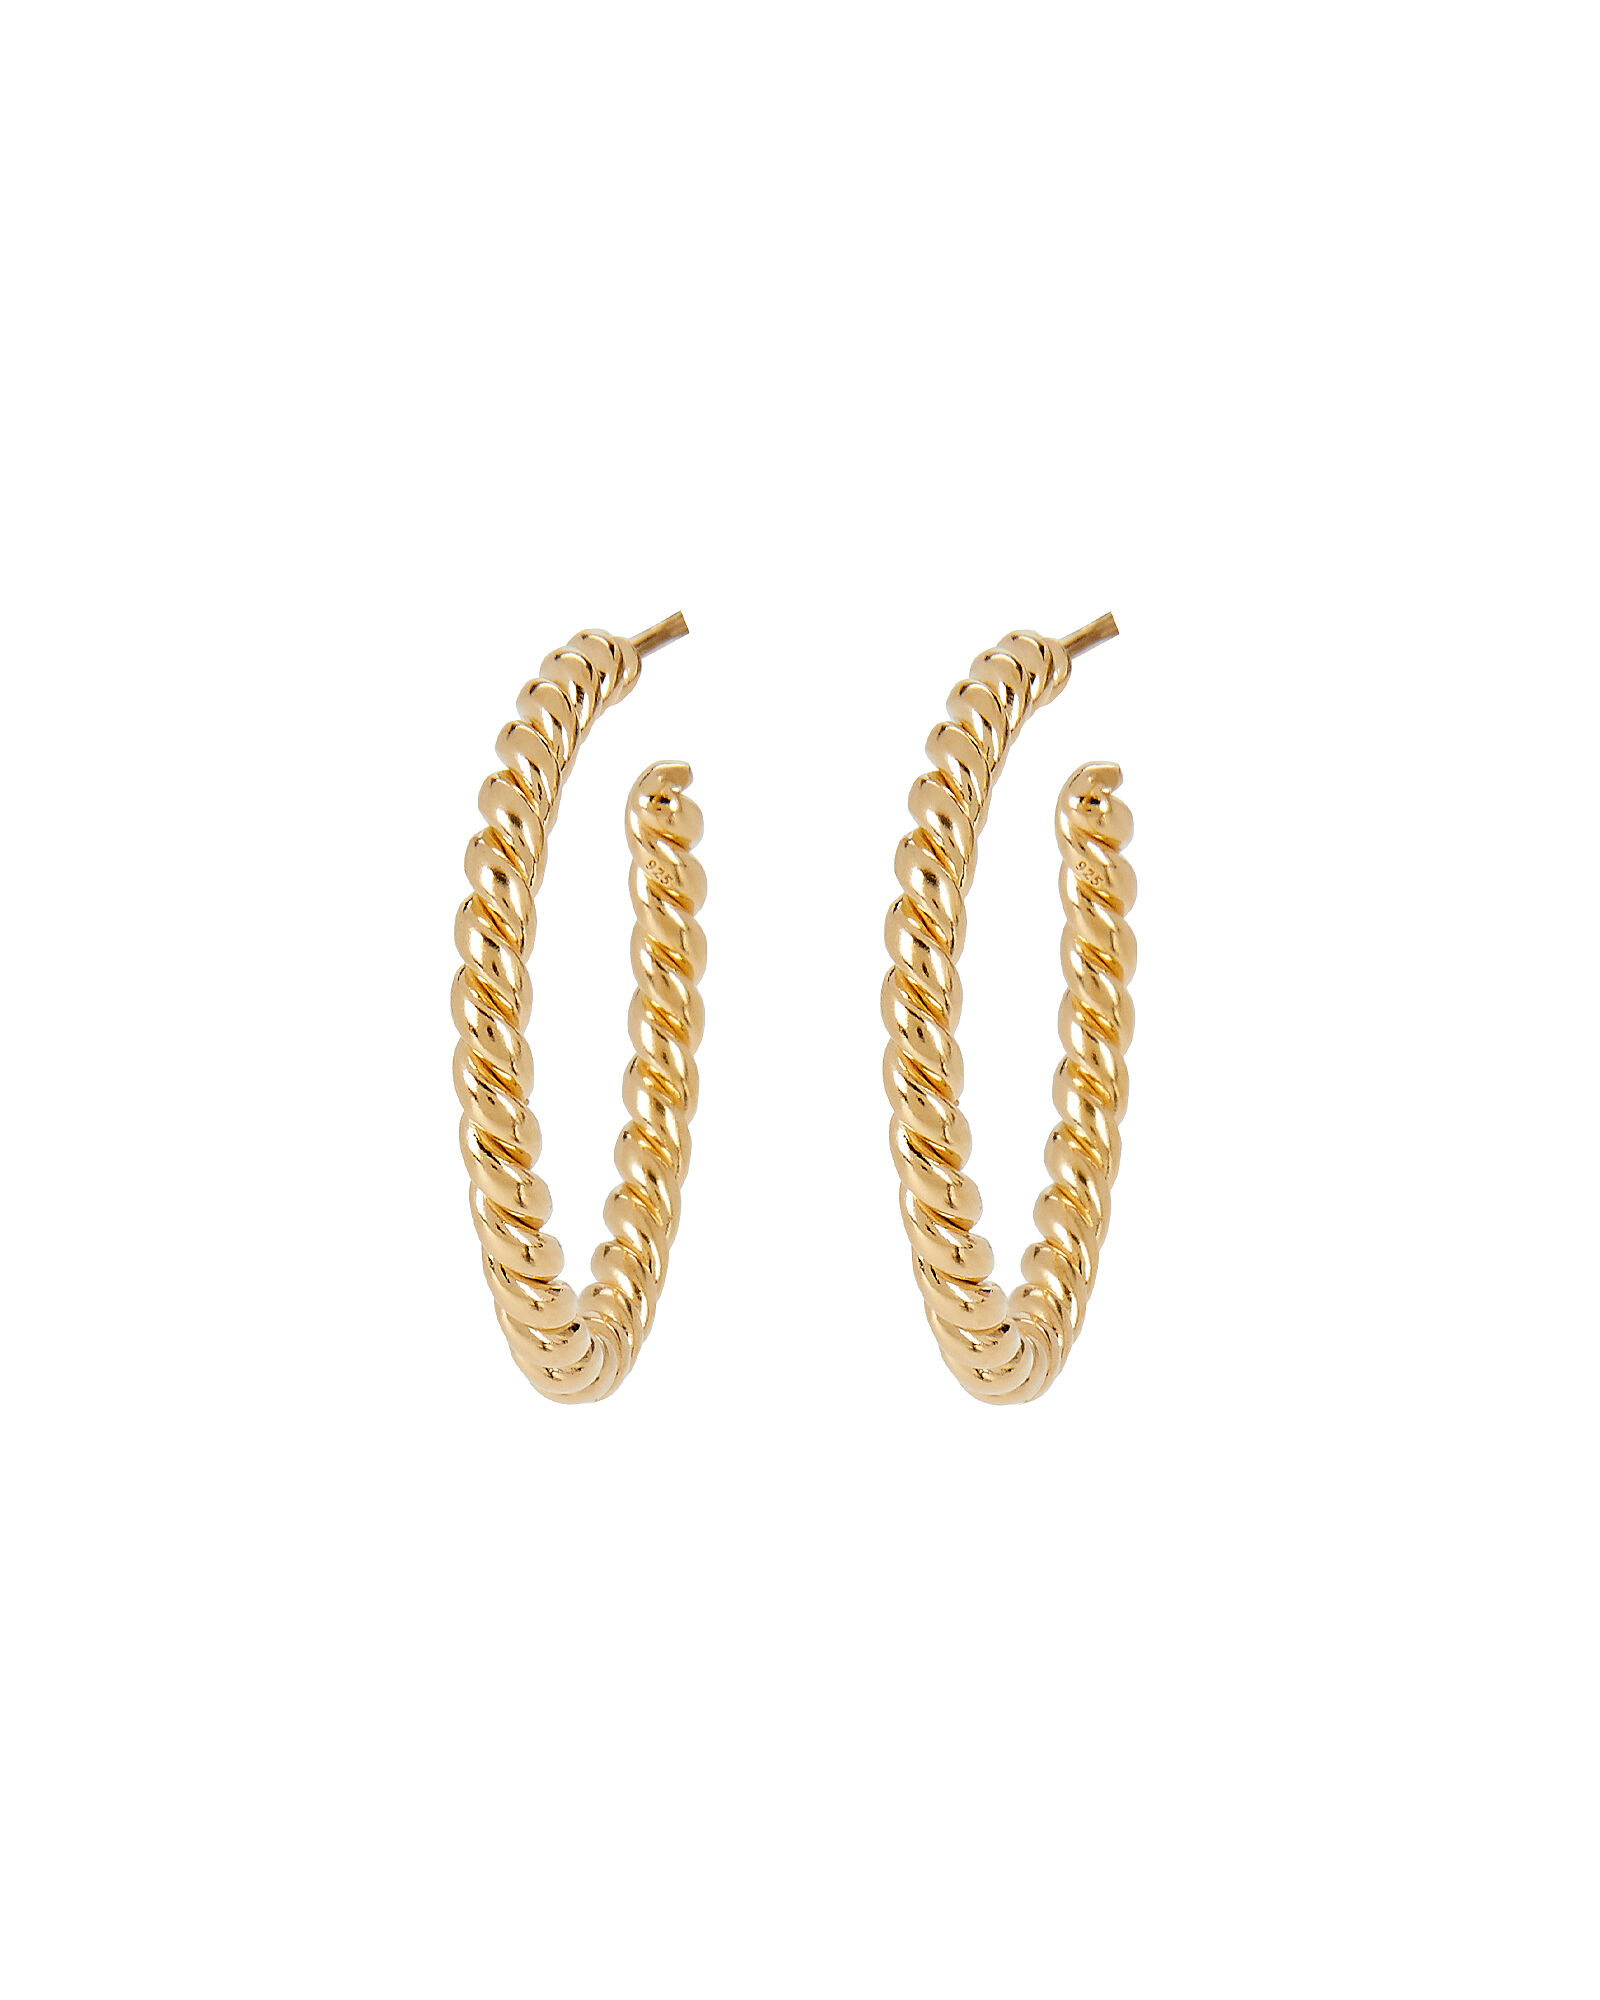 Small Twisted Hoop Earrings, GOLD, hi-res